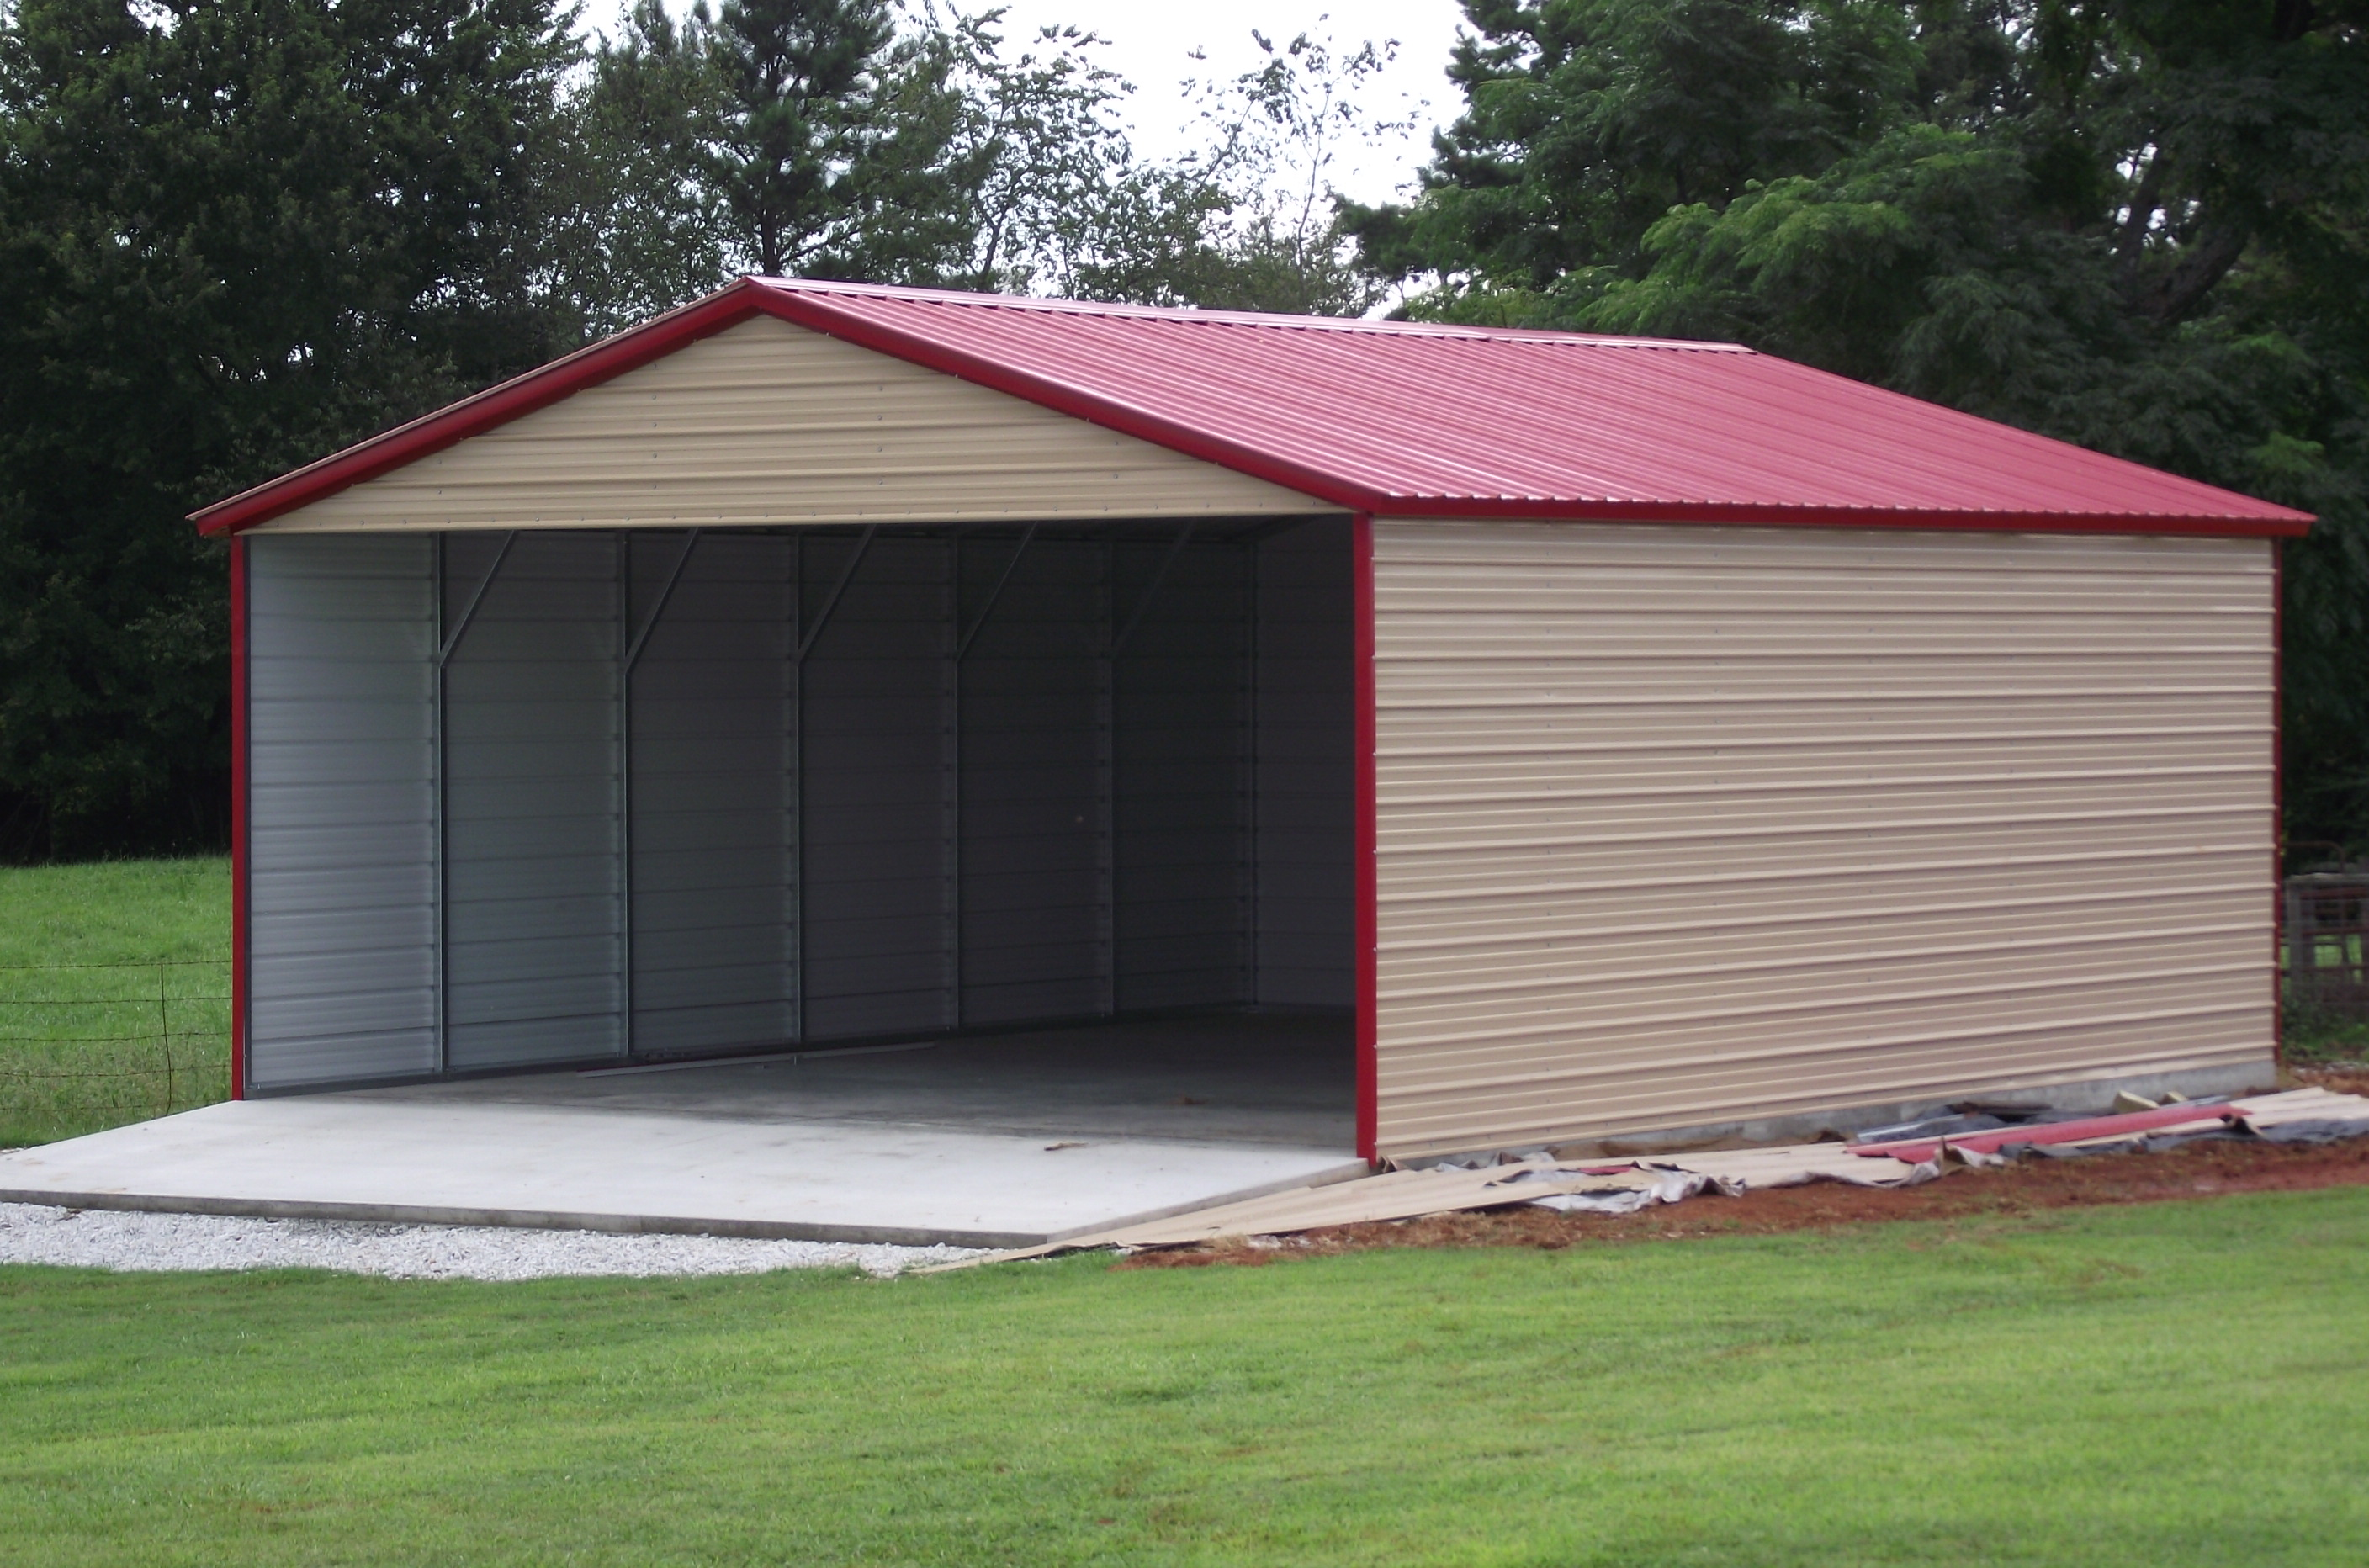 Carports arizona az metal carports arizona az for Metal garage pics